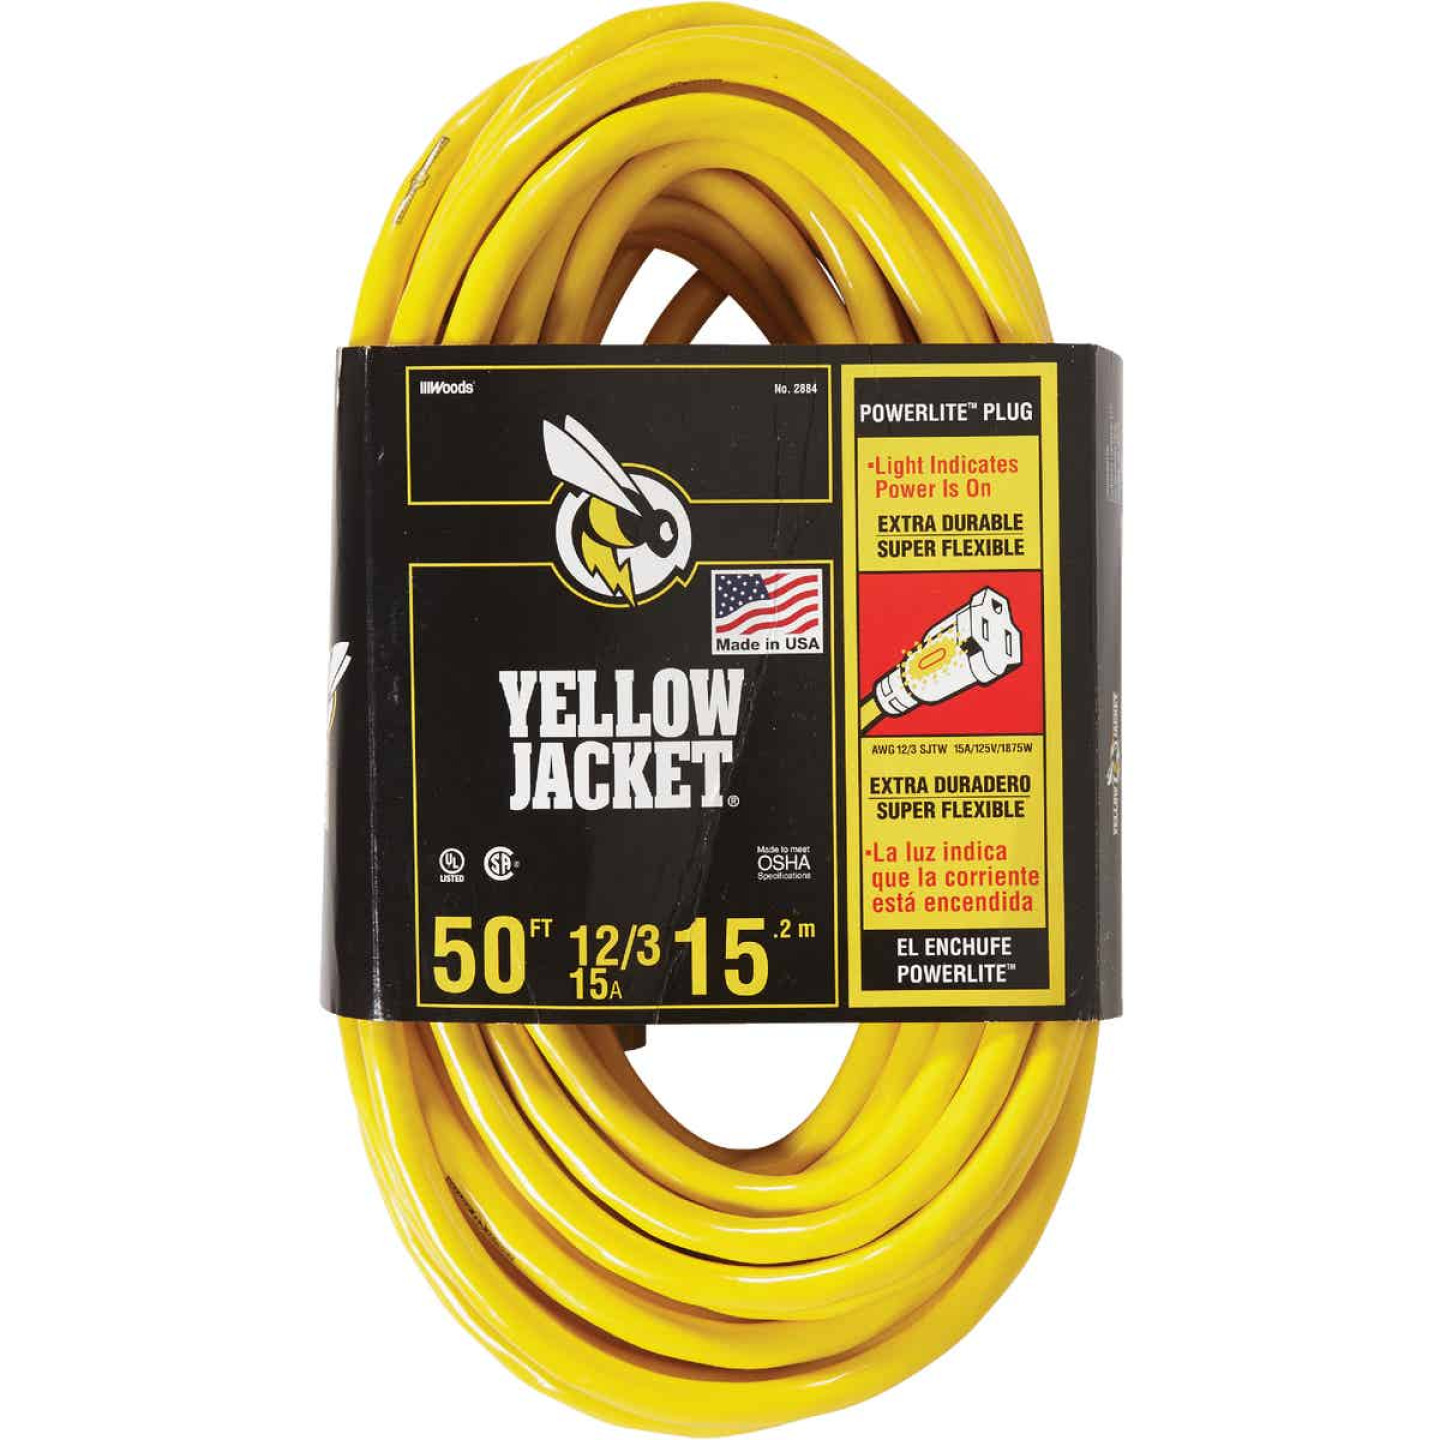 Yellow Jacket 50 Ft. 12/3 Heavy-Duty Extension Cord w/Lighted End Image 1